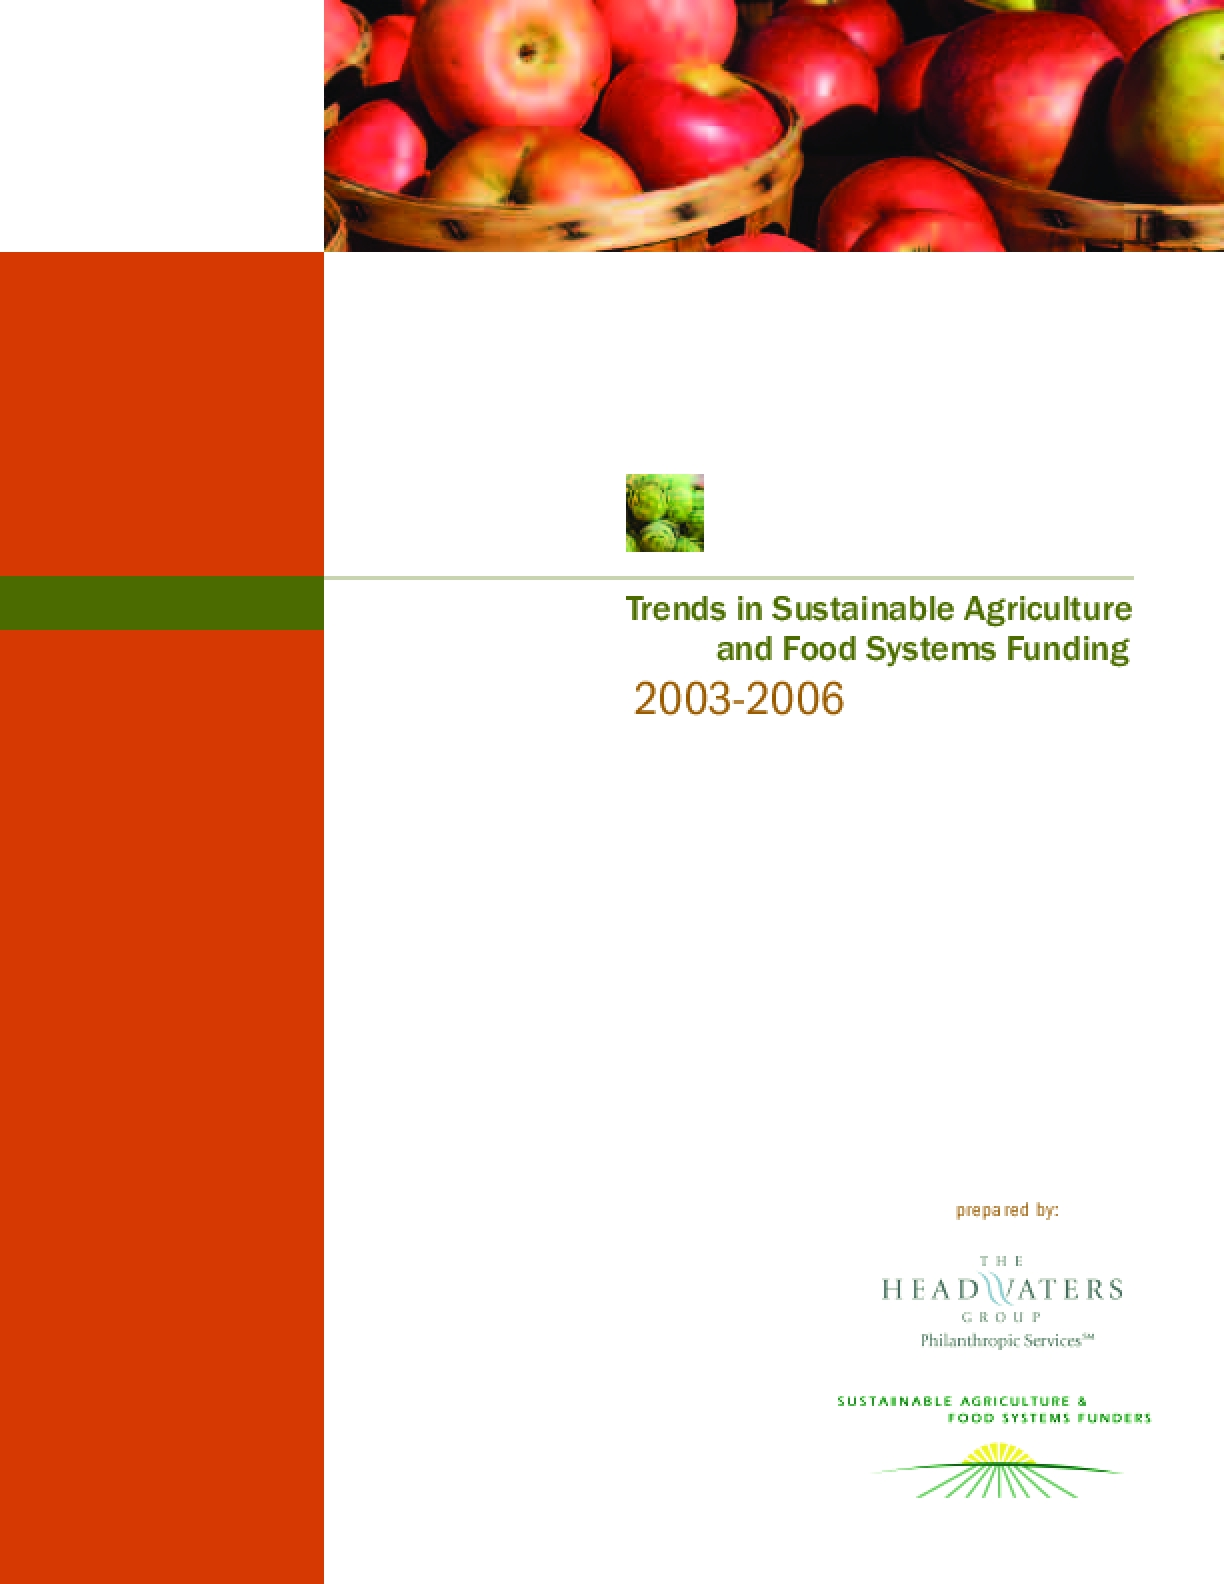 Trends in Sustainable Agriculture & Food Systems Funding 2003-2006